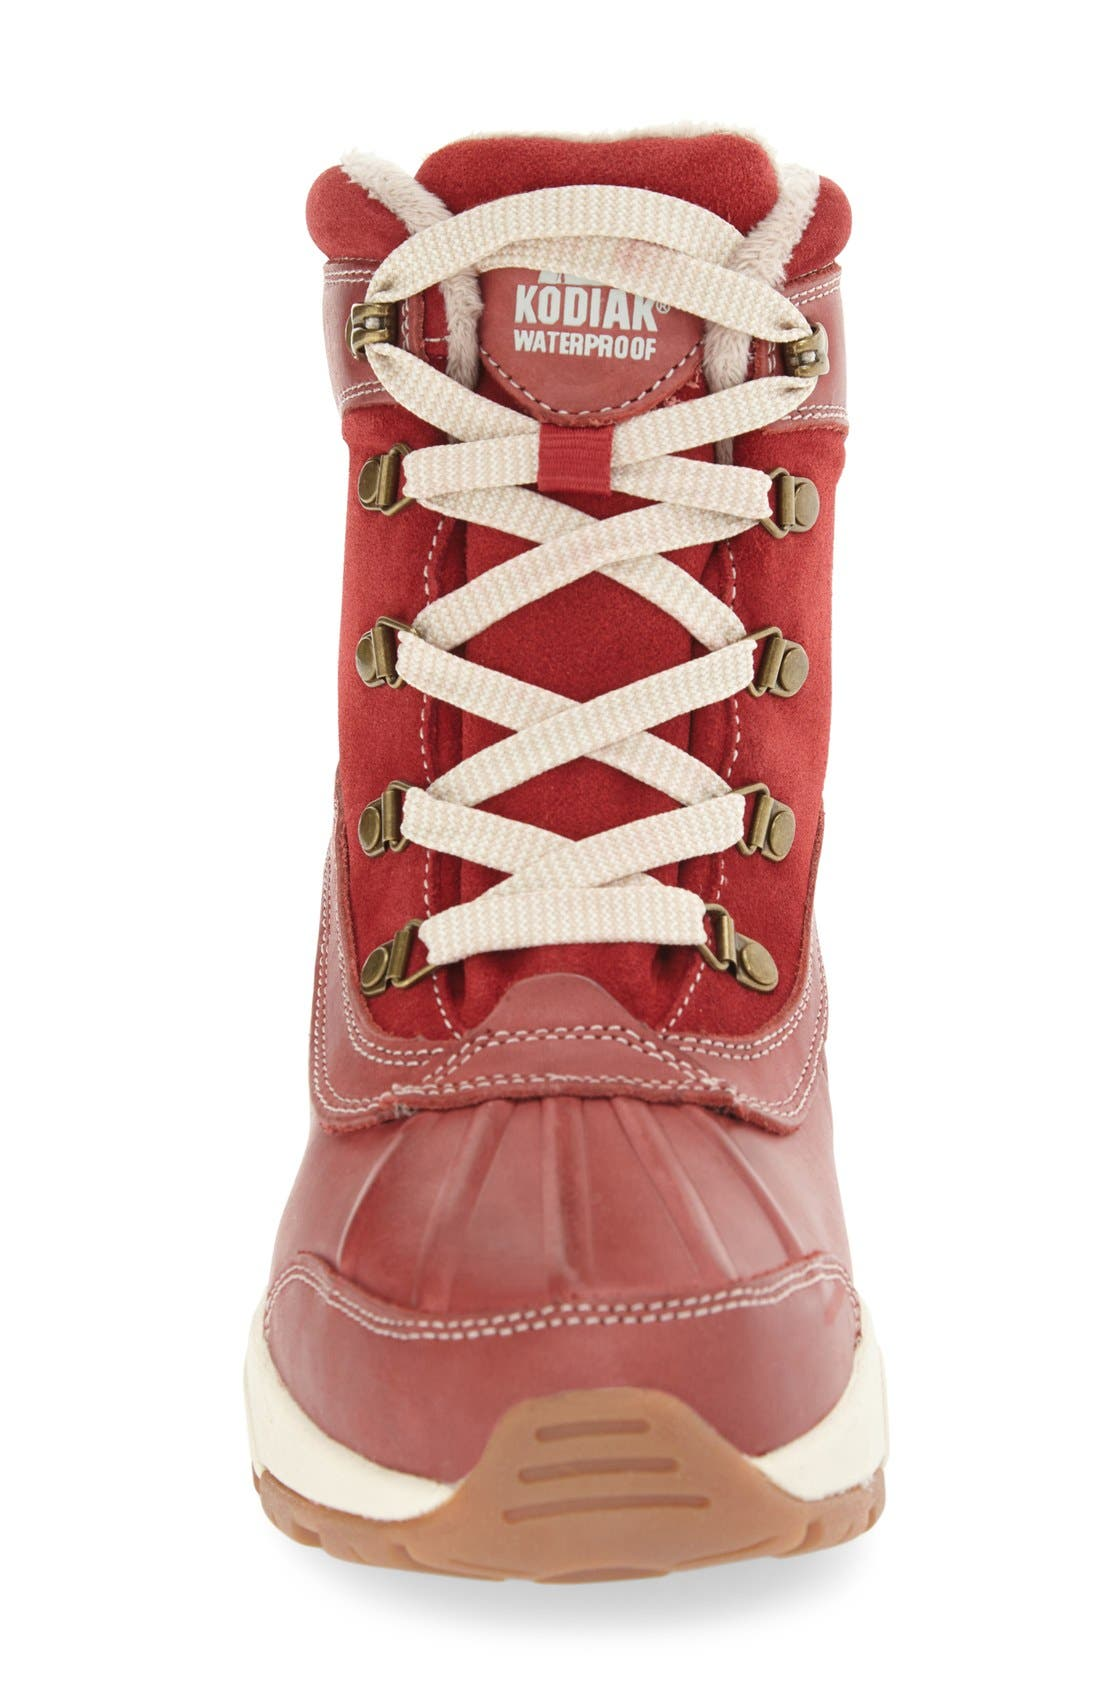 'Renee' Waterproof Insulated Winter Boot,                             Alternate thumbnail 3, color,                             Red Leather